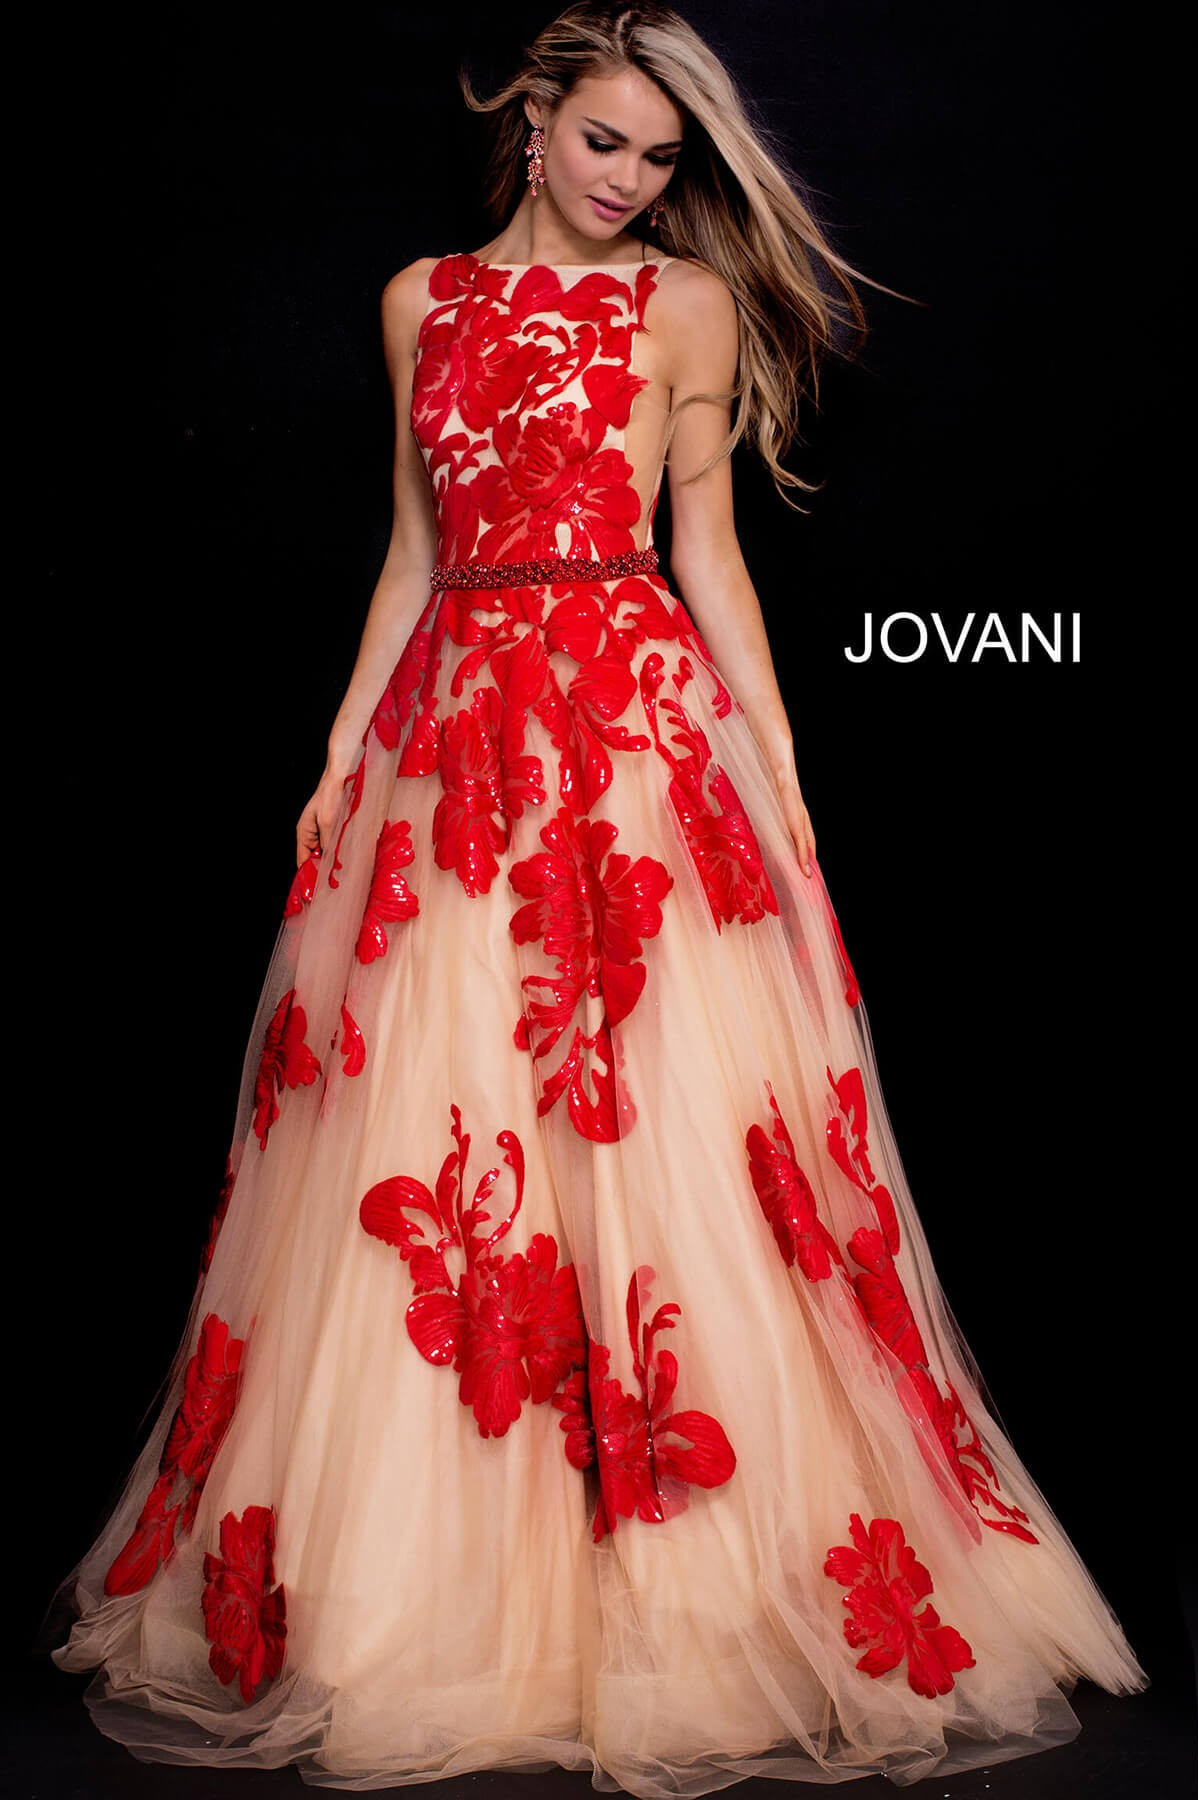 Jovani Nude Red Embellished Boat Neck 48320 (#24 in auction)